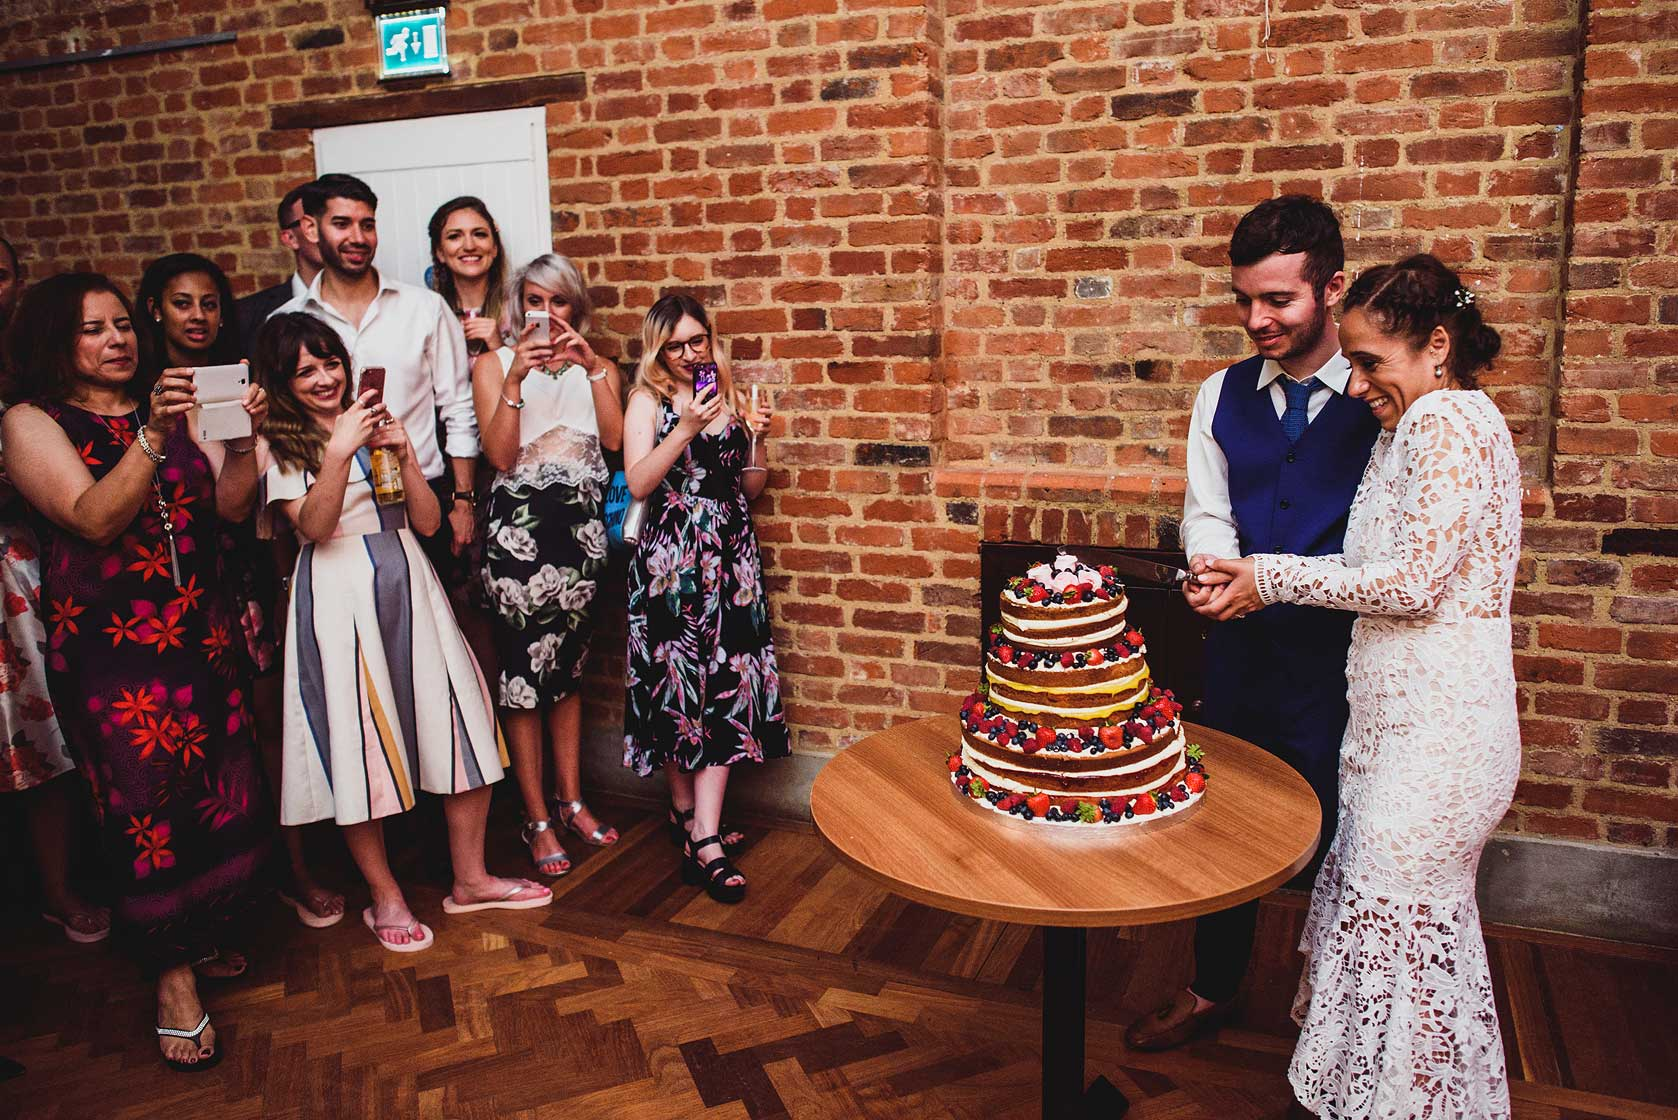 Reportage Wedding Photography at Forty Hall